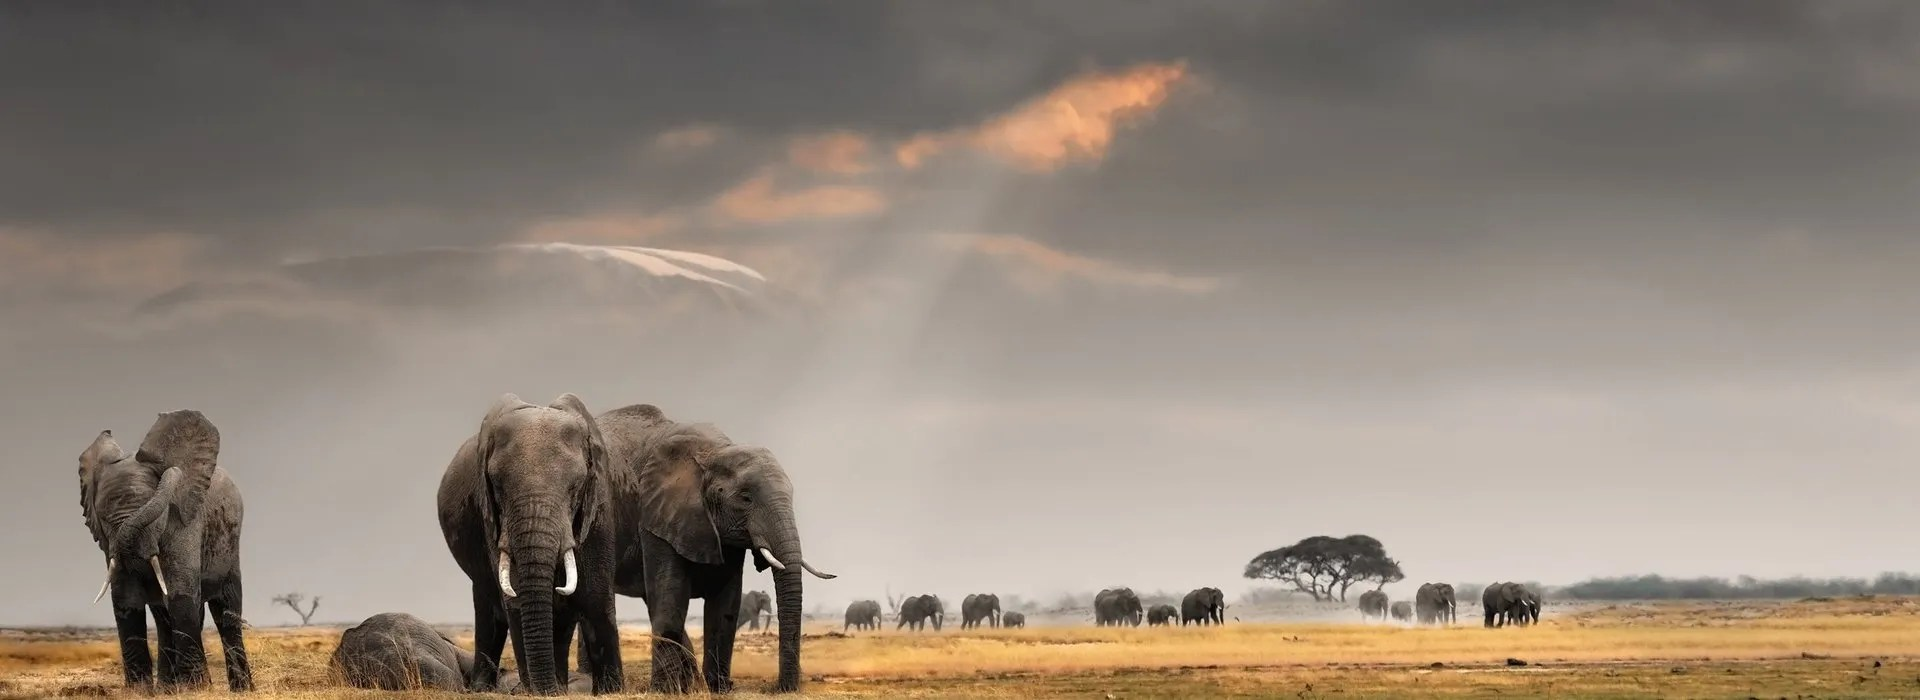 Africa Safaris - Elephants